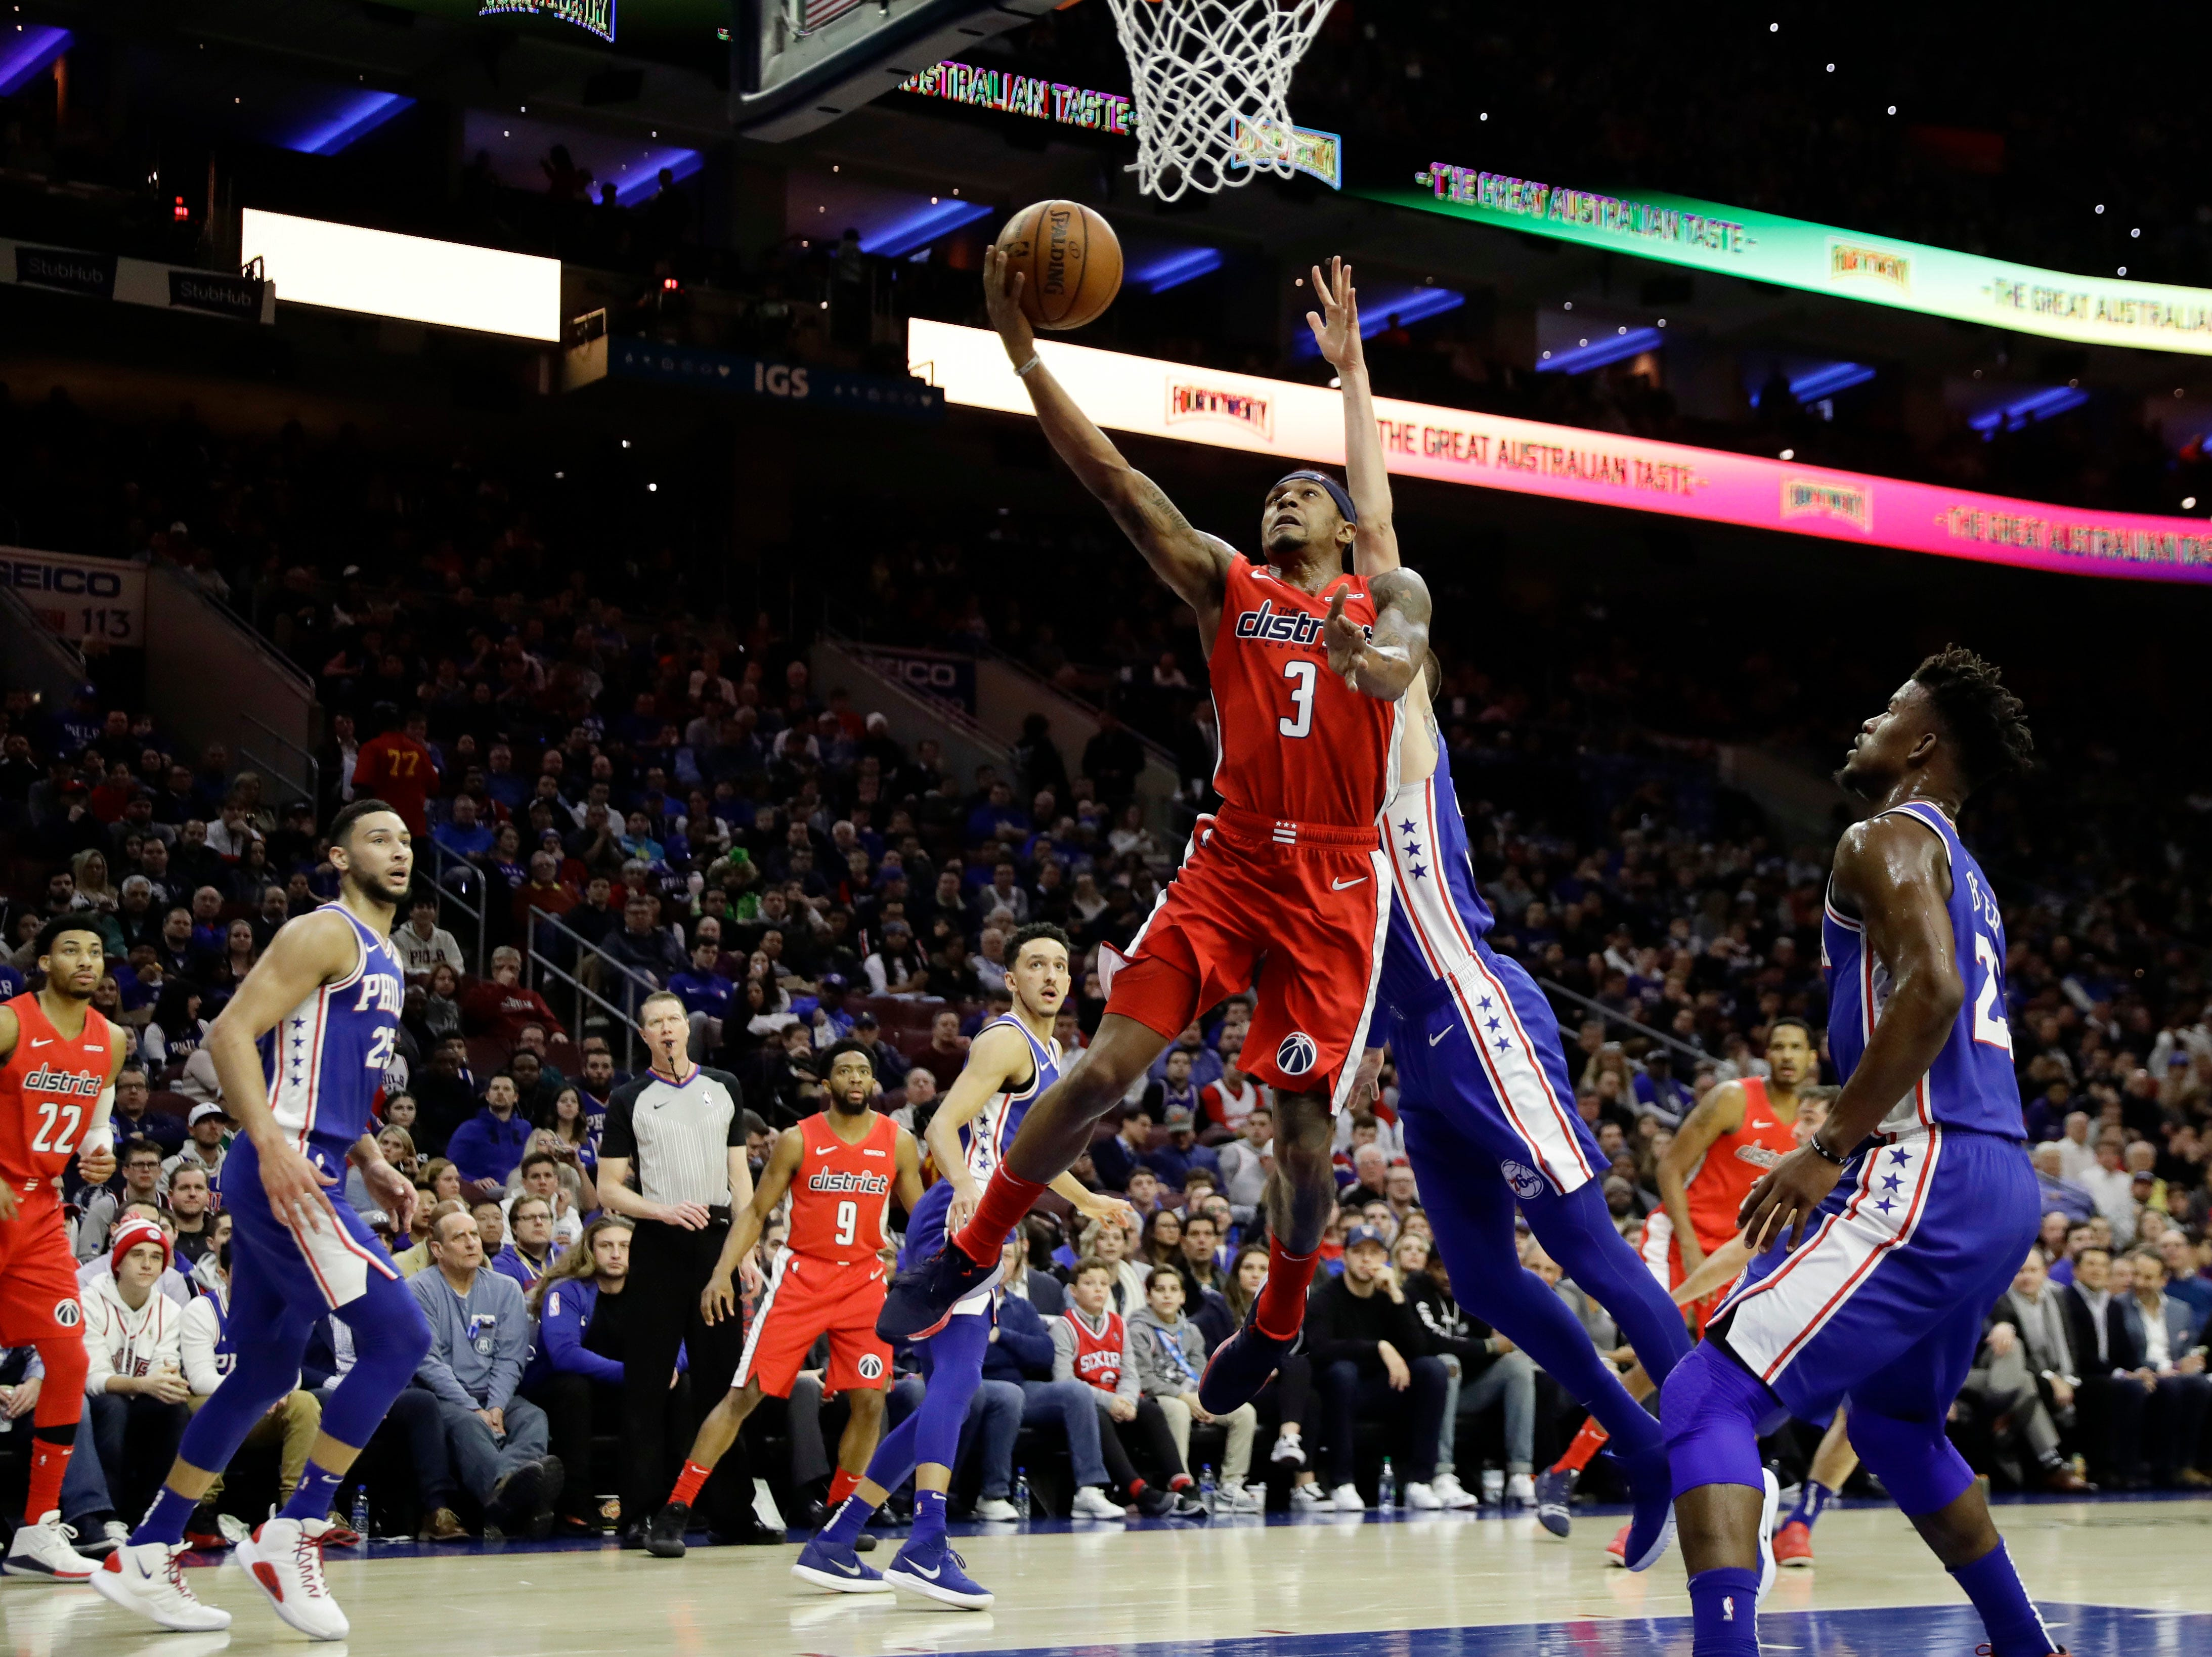 Washington Wizards' Bradley Beal, left, goes up for a shot past Philadelphia 76ers' Mike Muscala during the first half of an NBA basketball game, Tuesday, Jan. 8, 2019, in Philadelphia. (AP Photo/Matt Slocum)